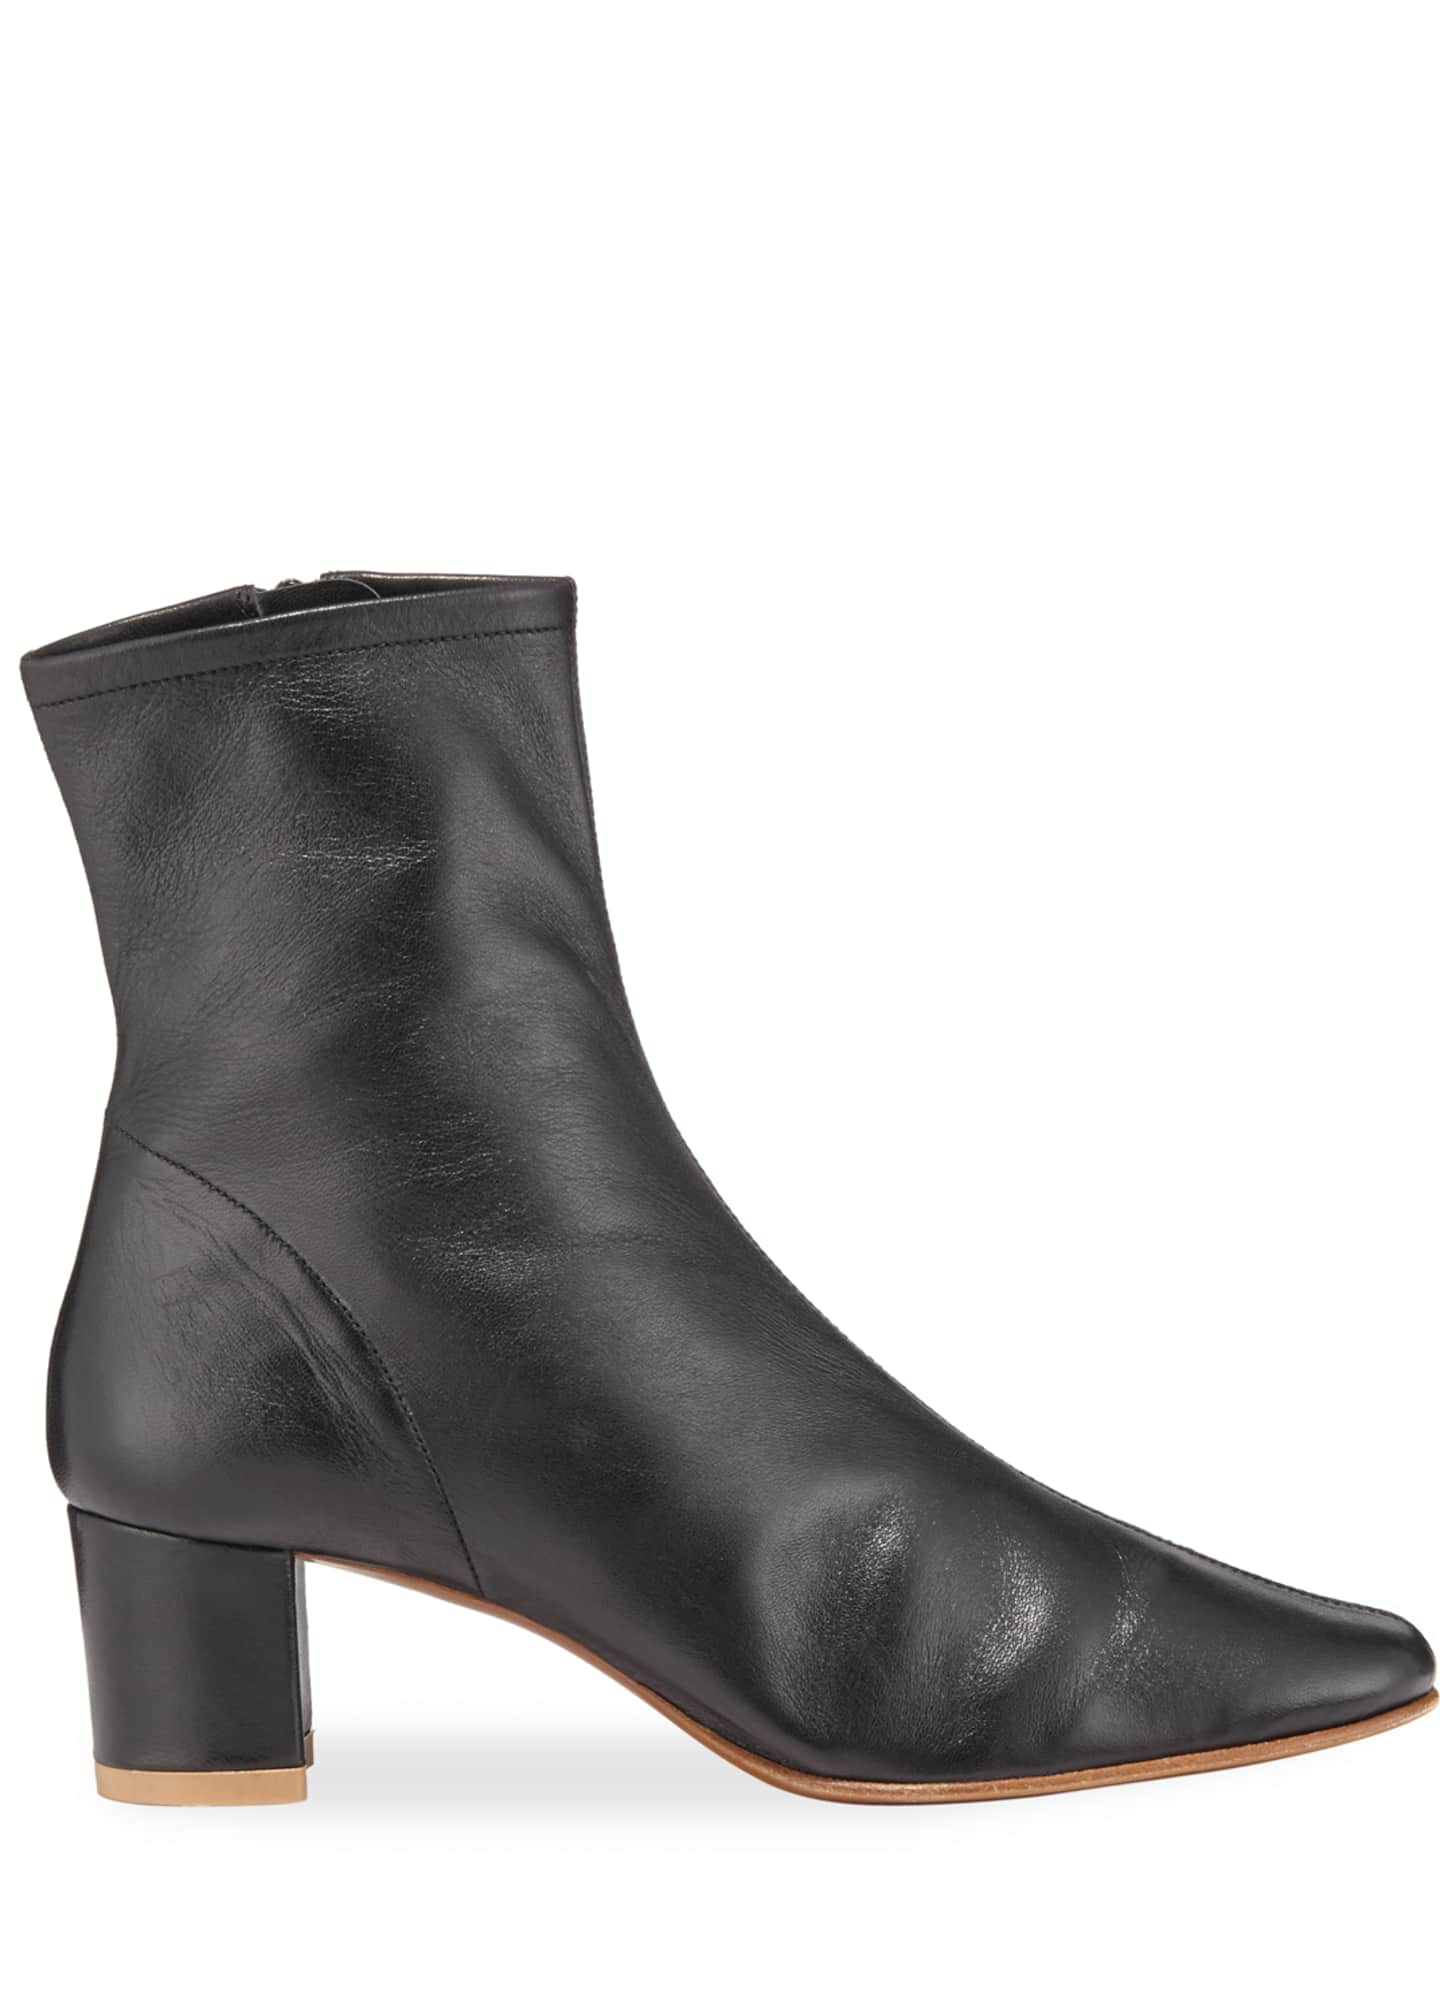 Image 2 of 5: Sofia Leather Ankle Booties